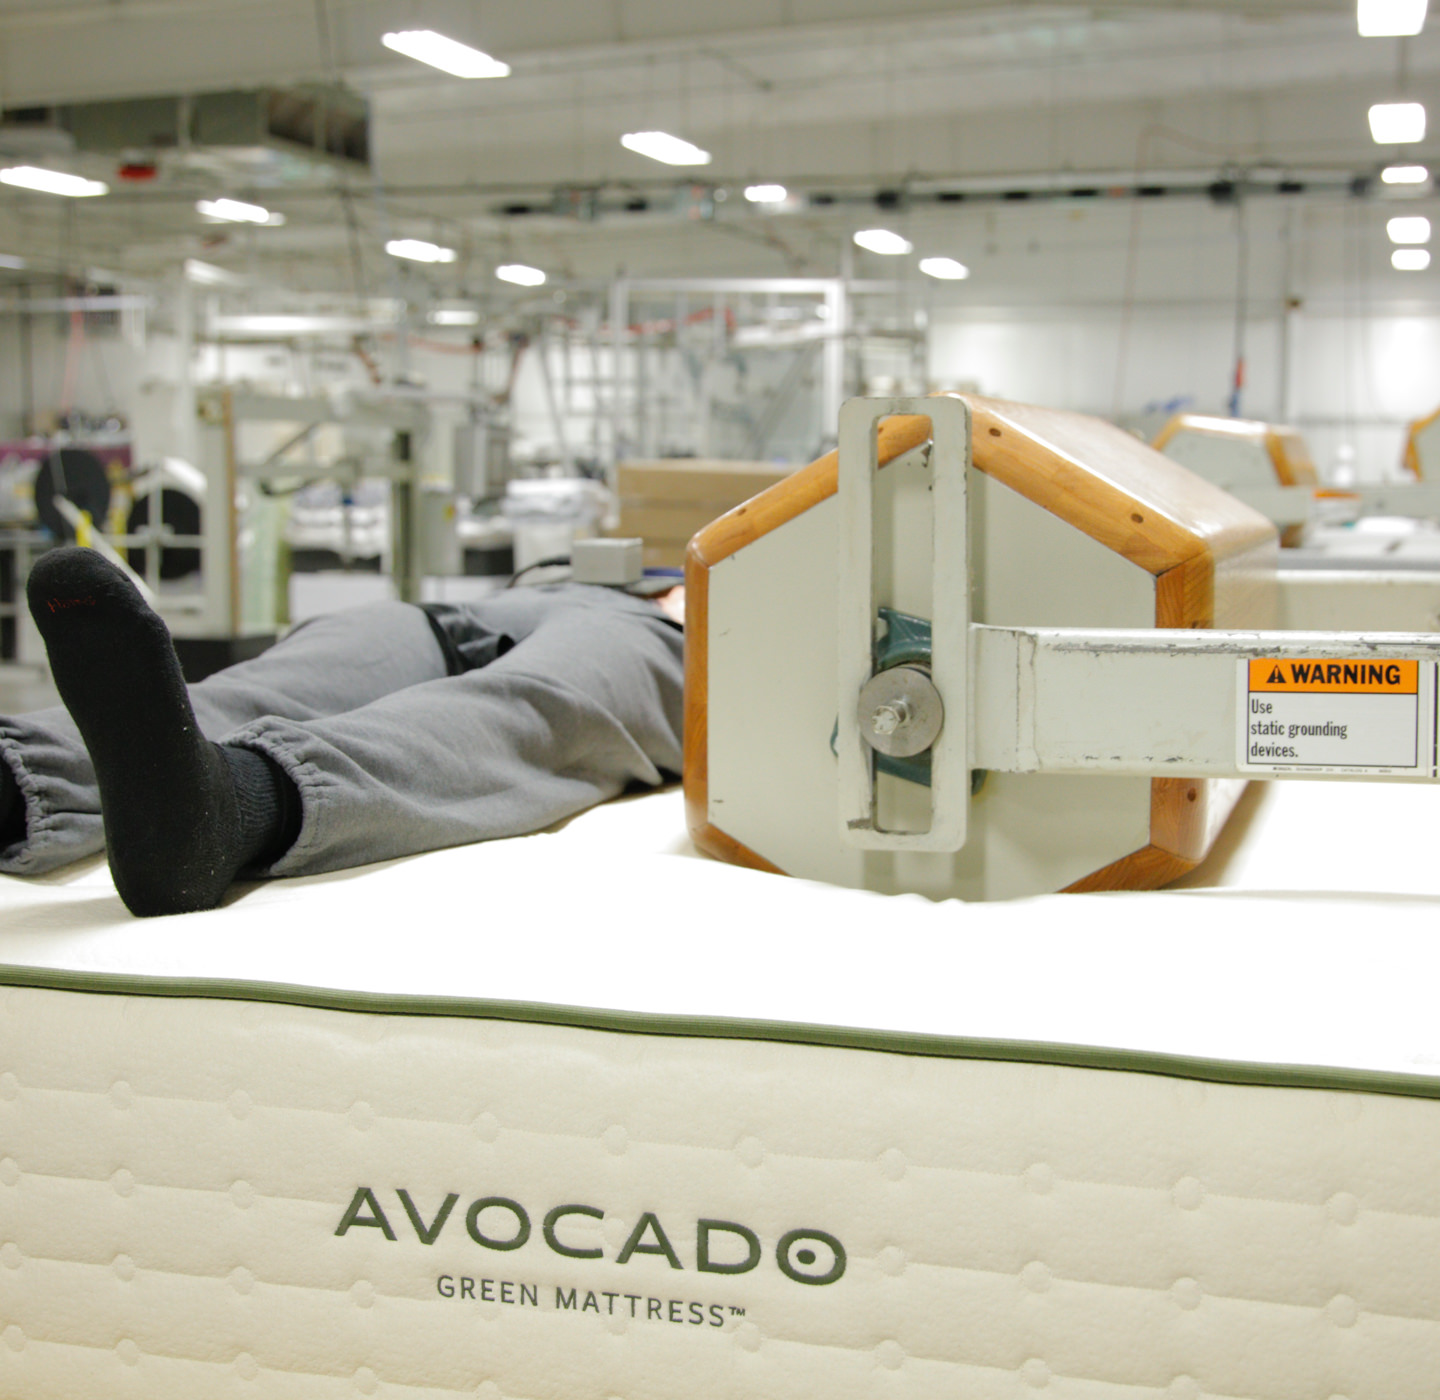 Lab Tested Durability Warranty Durable Lasts Quality Mattress Avocado Green Mattress